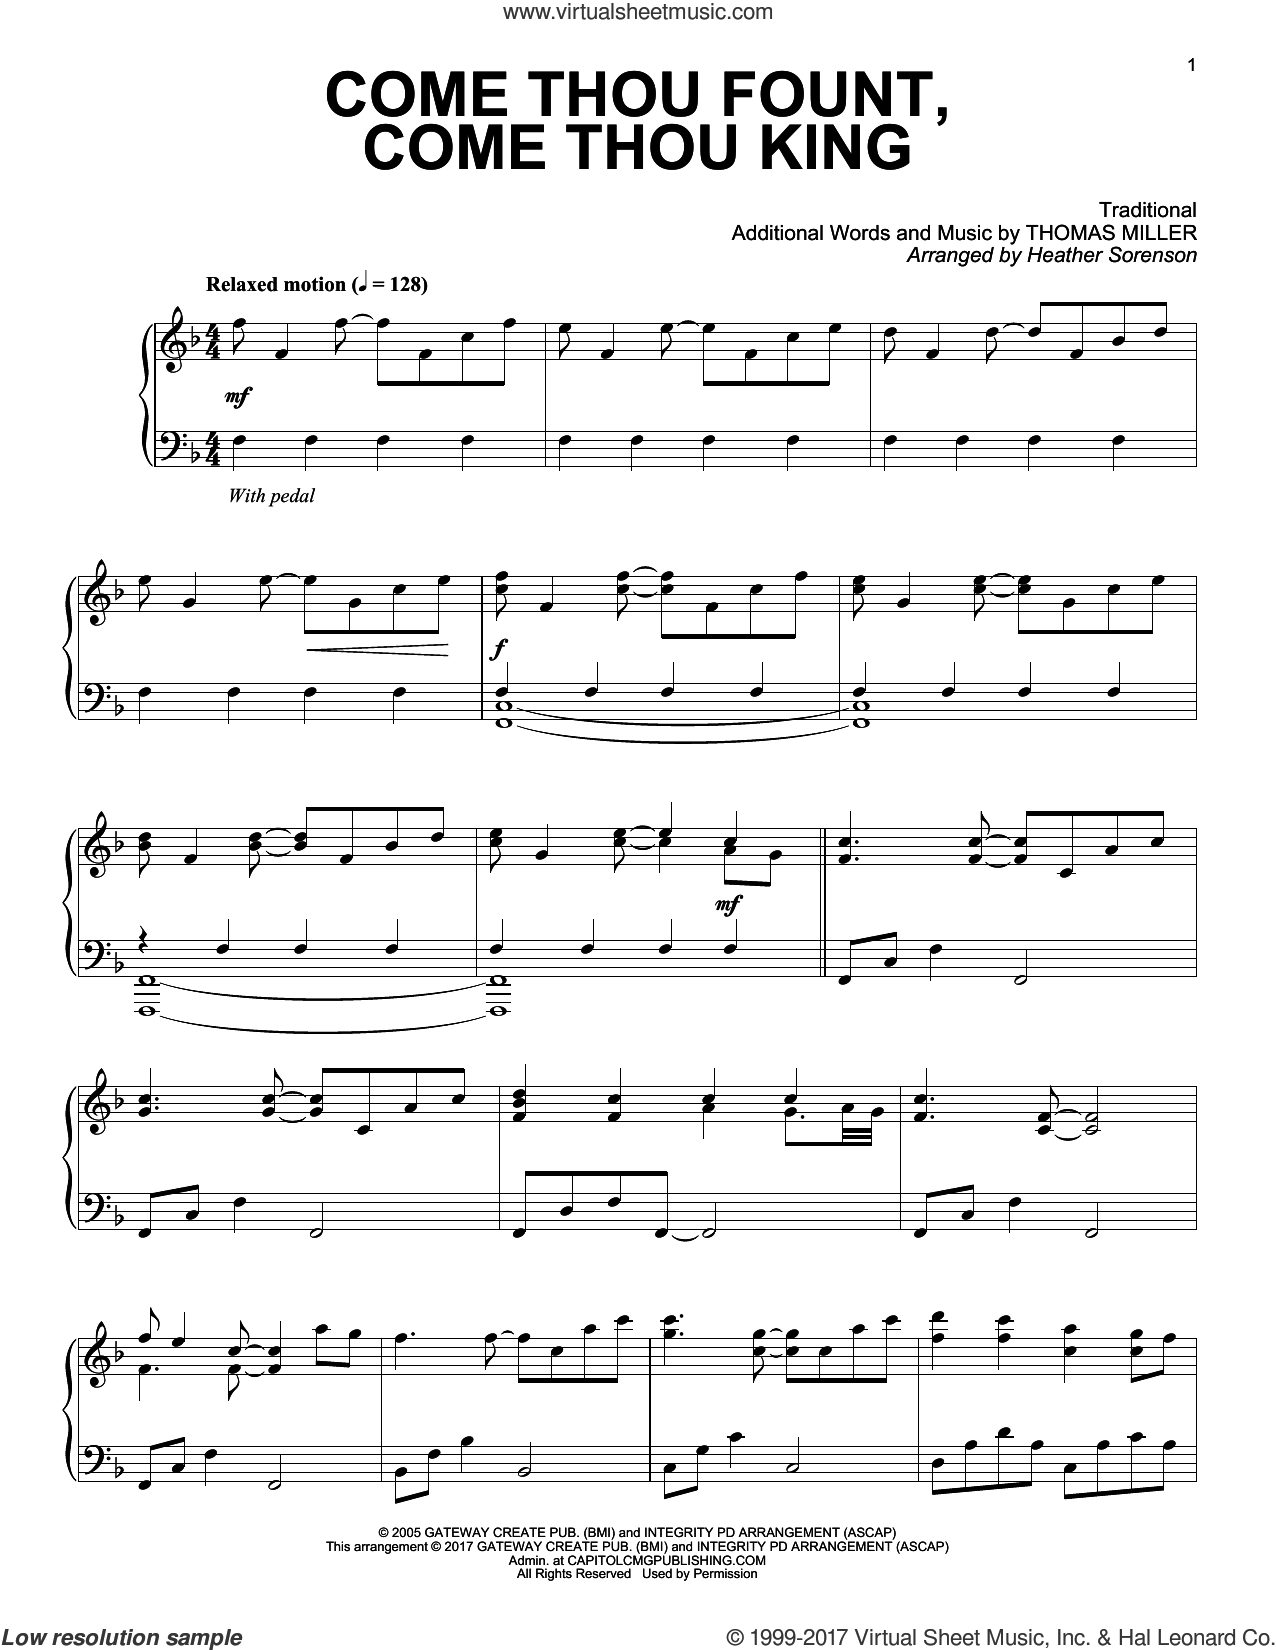 Come Thou Fount, Come Thou King sheet music for piano solo by Thomas Miller and Miscellaneous, intermediate skill level